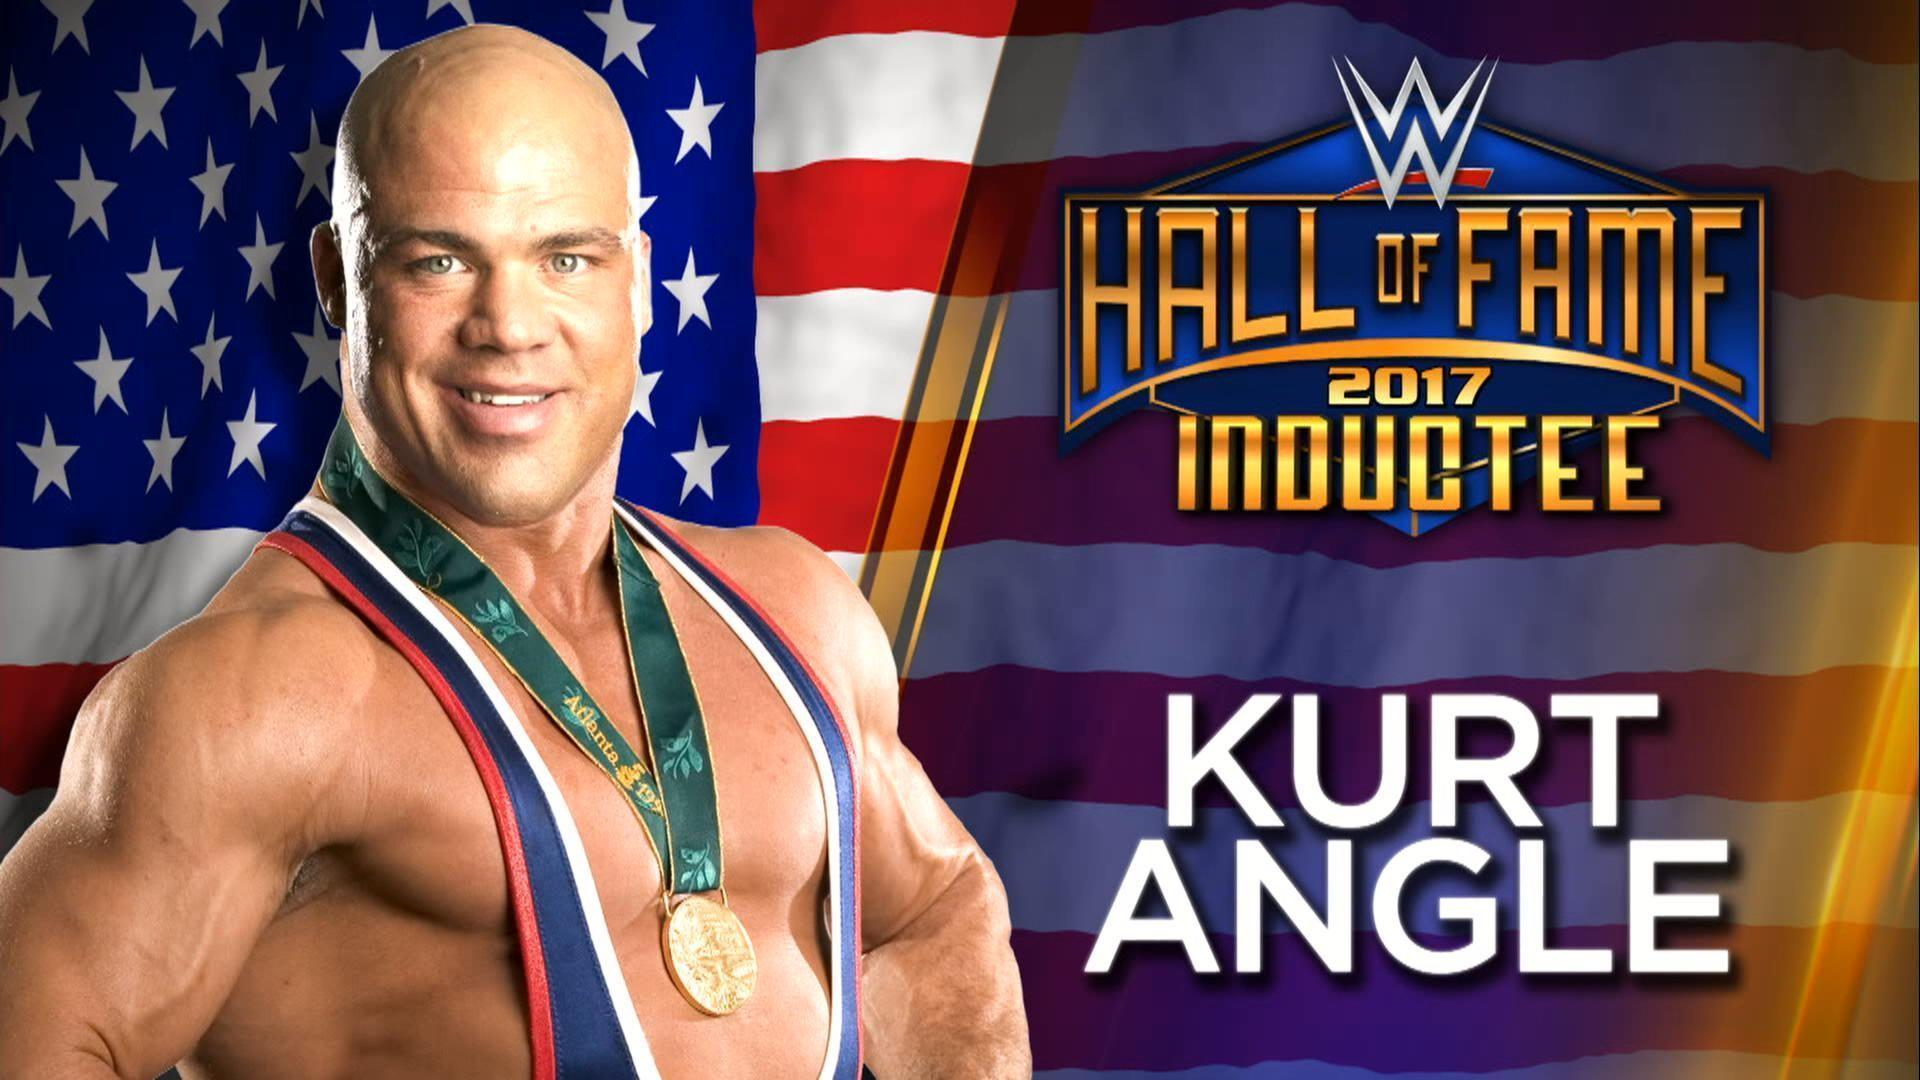 Kurt Angle On His Hall of Fame Inductor, New Legends Entering ...